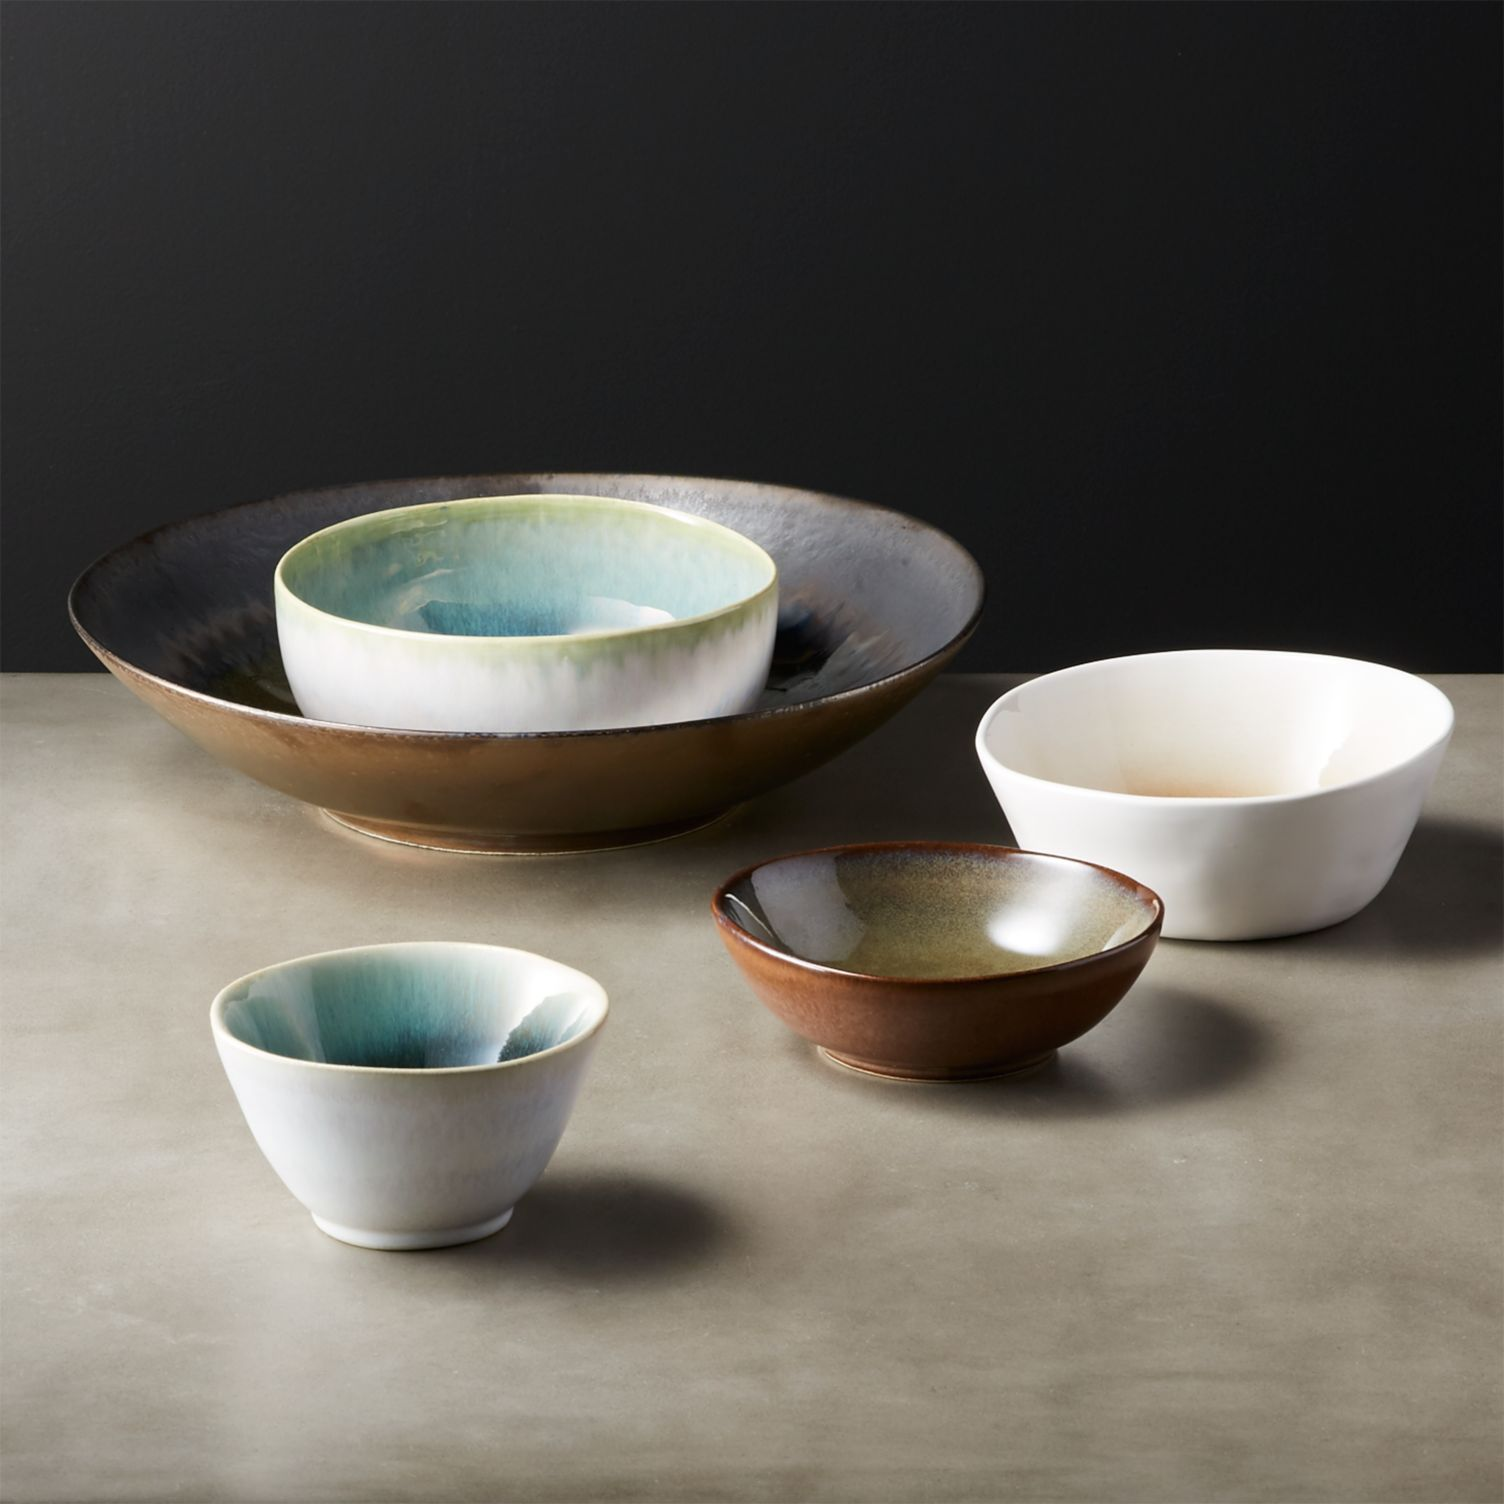 Glazed serving bowls from CB2